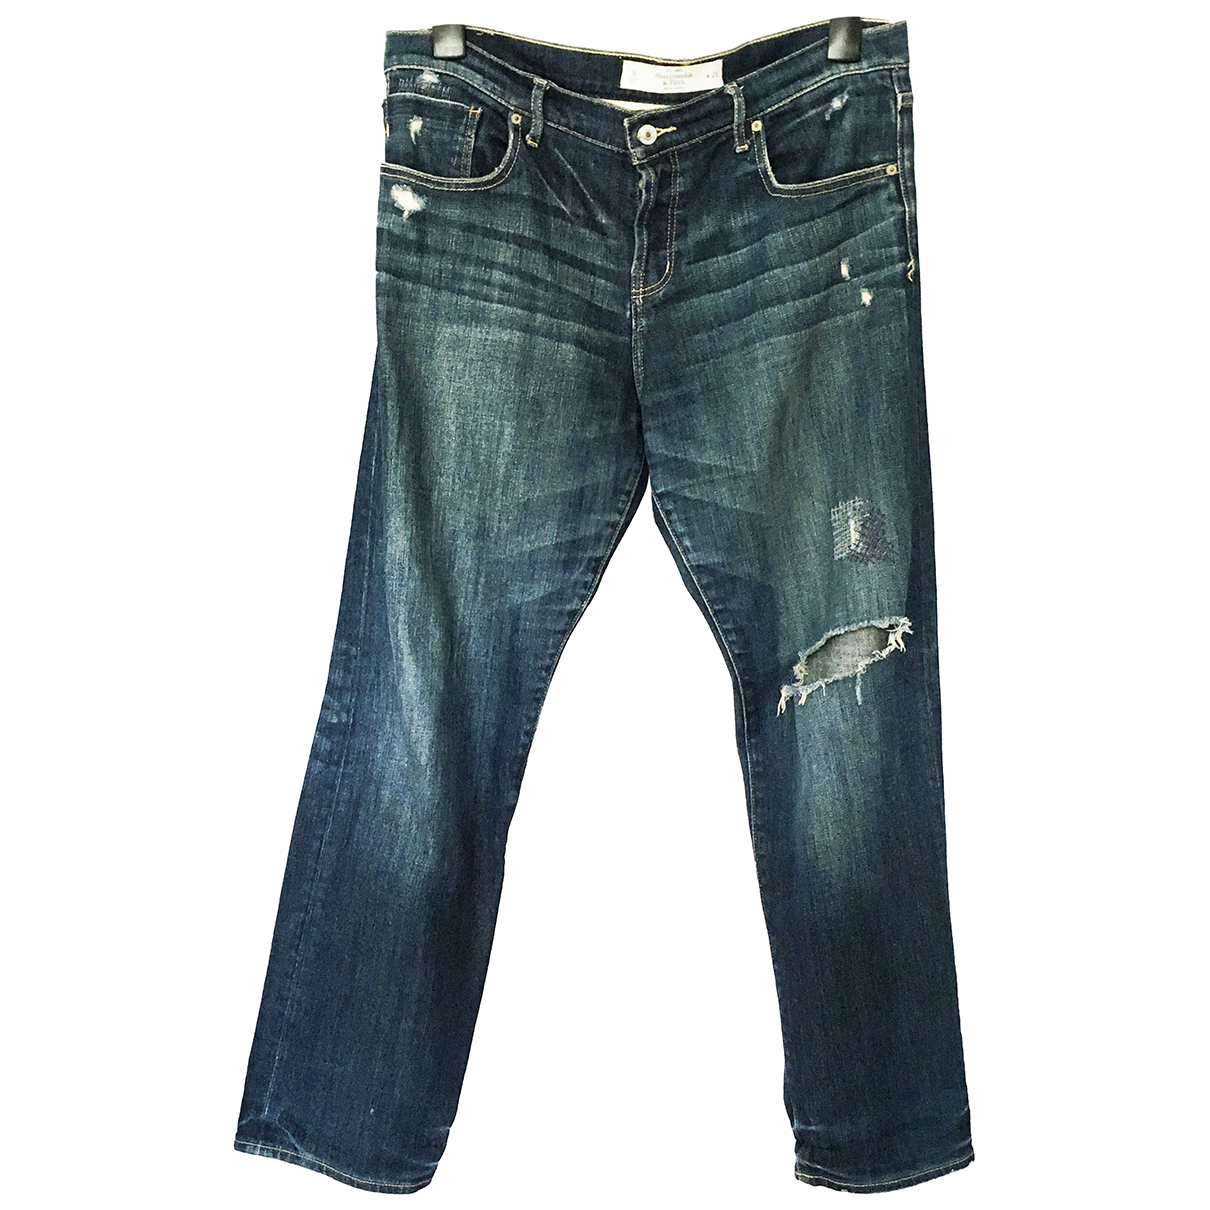 Abercrombie & Fitch N Blue Cotton - elasthane Jeans for Women 29 US